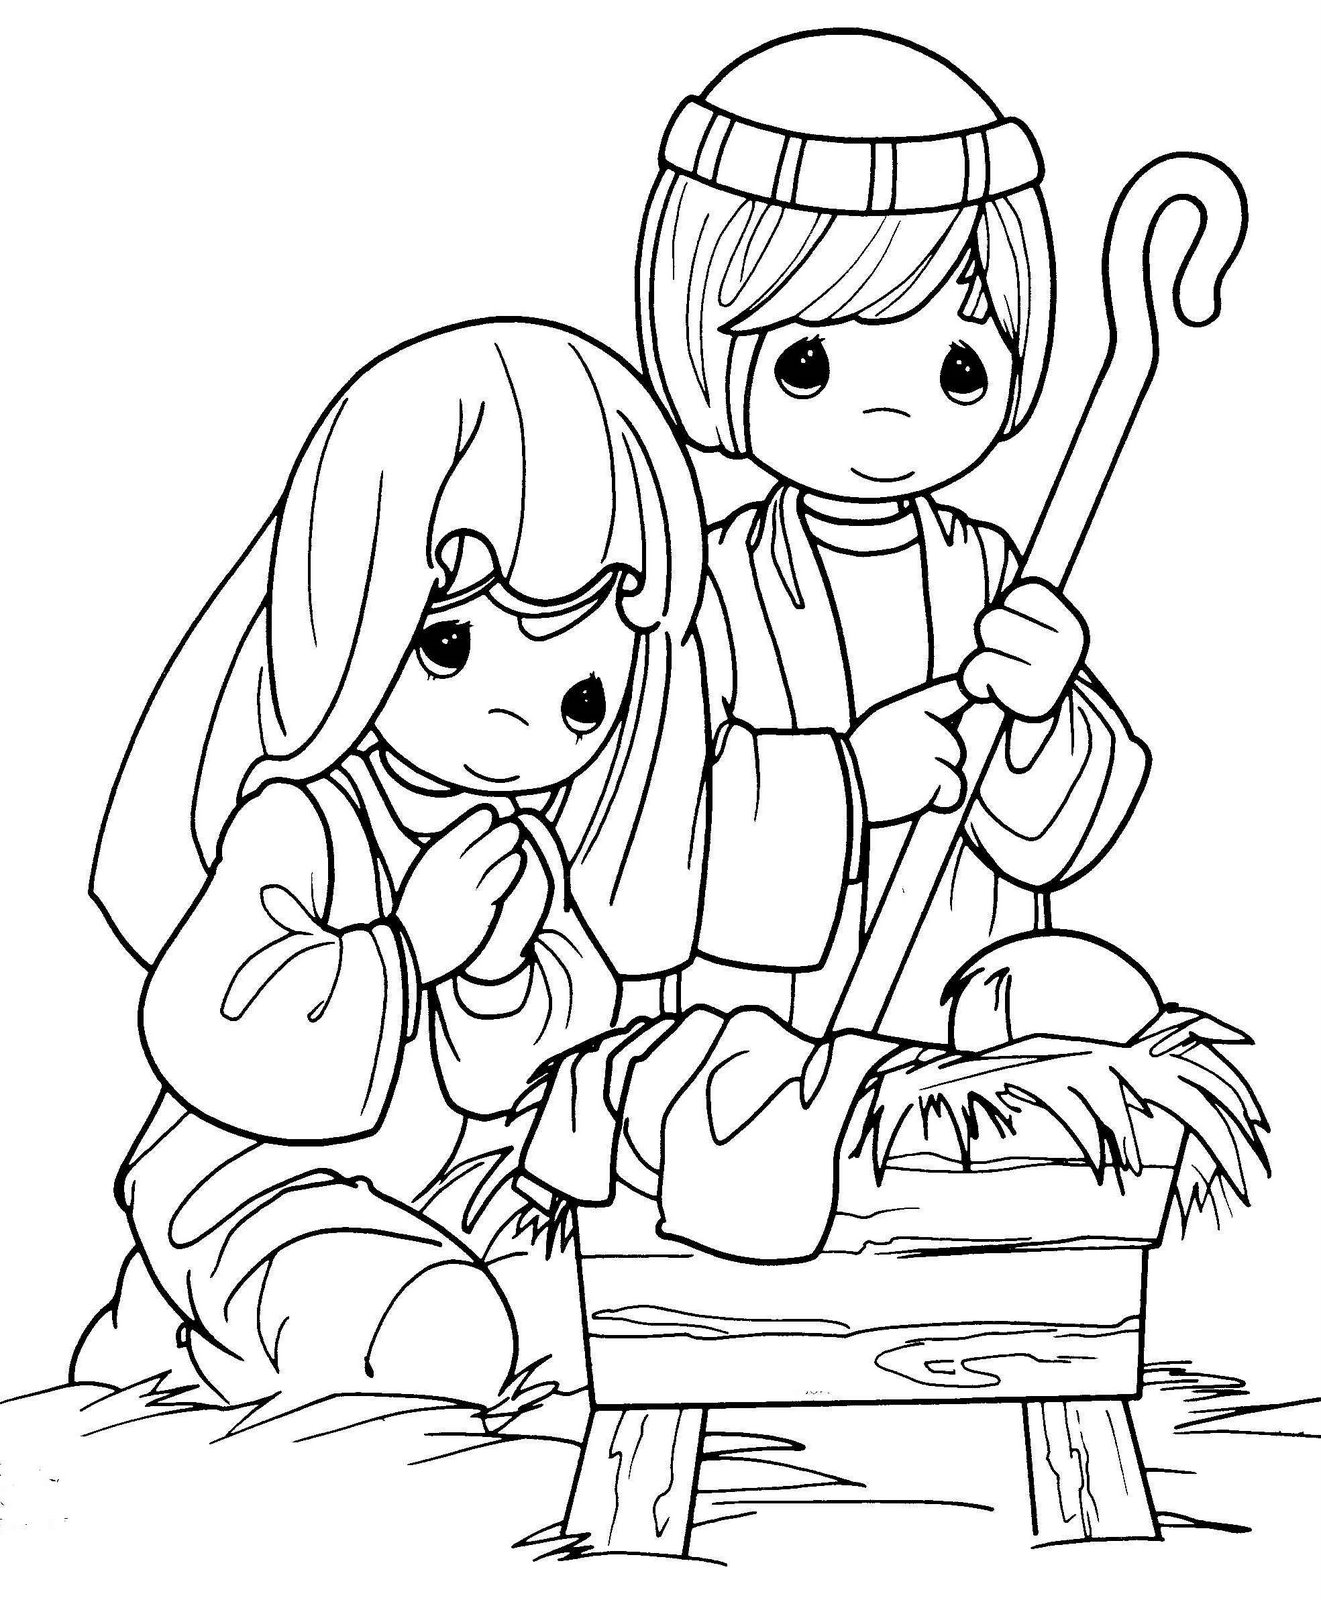 baby jesus in a manger coloring pages jesus lay in a manger bible christmas story coloring pages jesus coloring manger baby in a pages